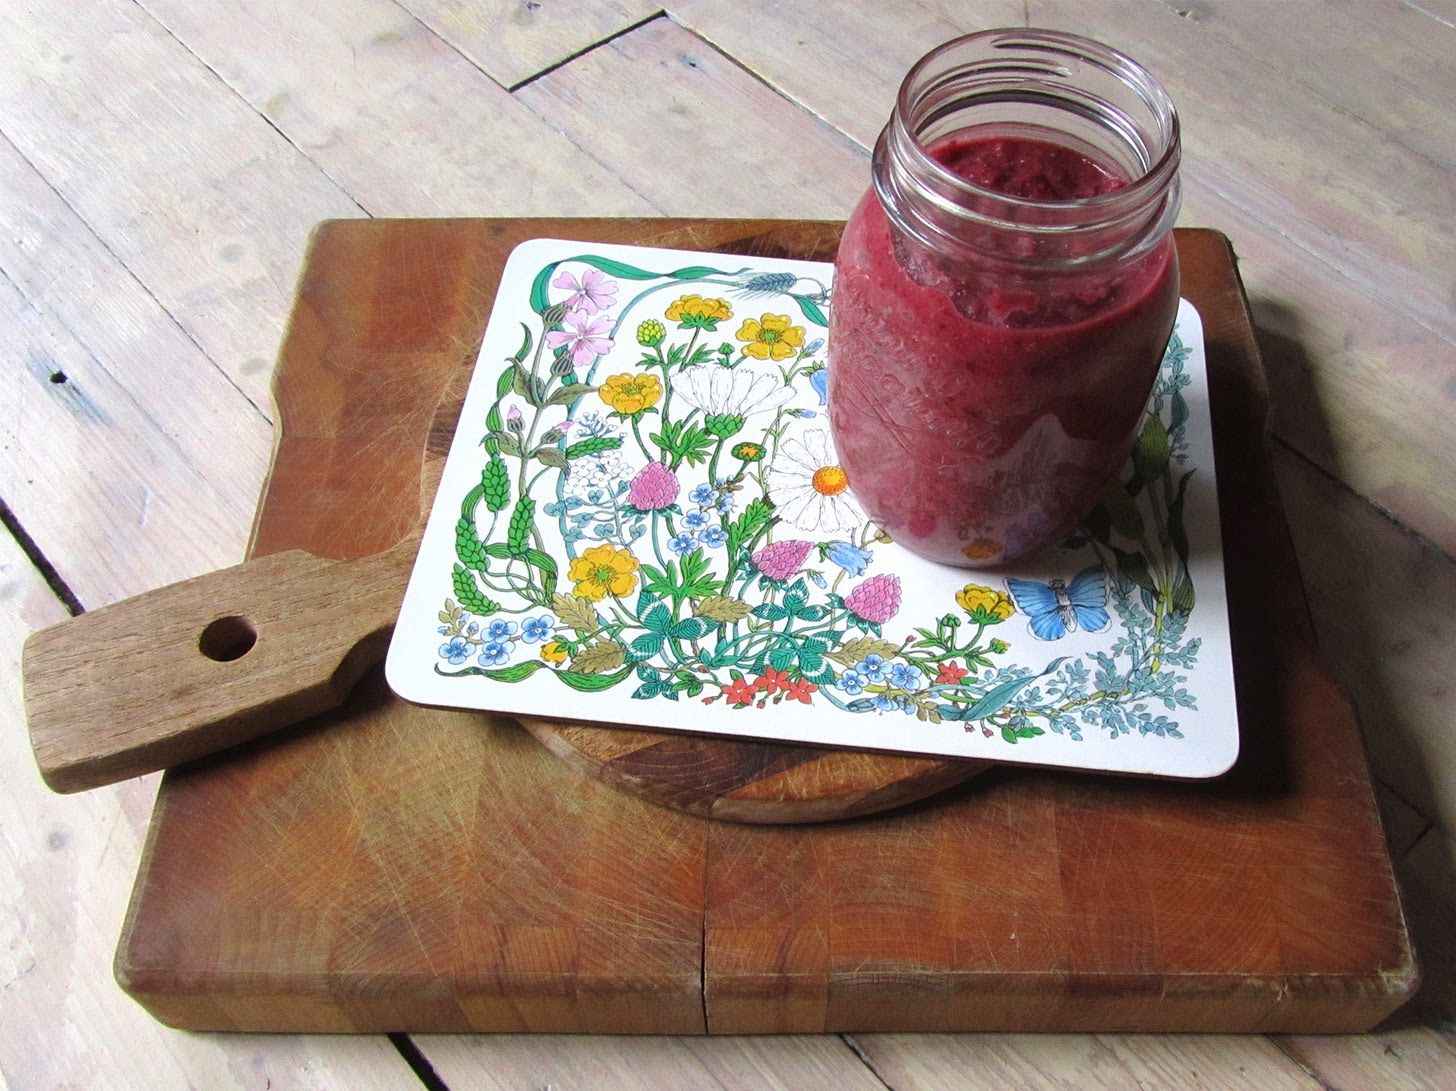 beet-apple smoothie